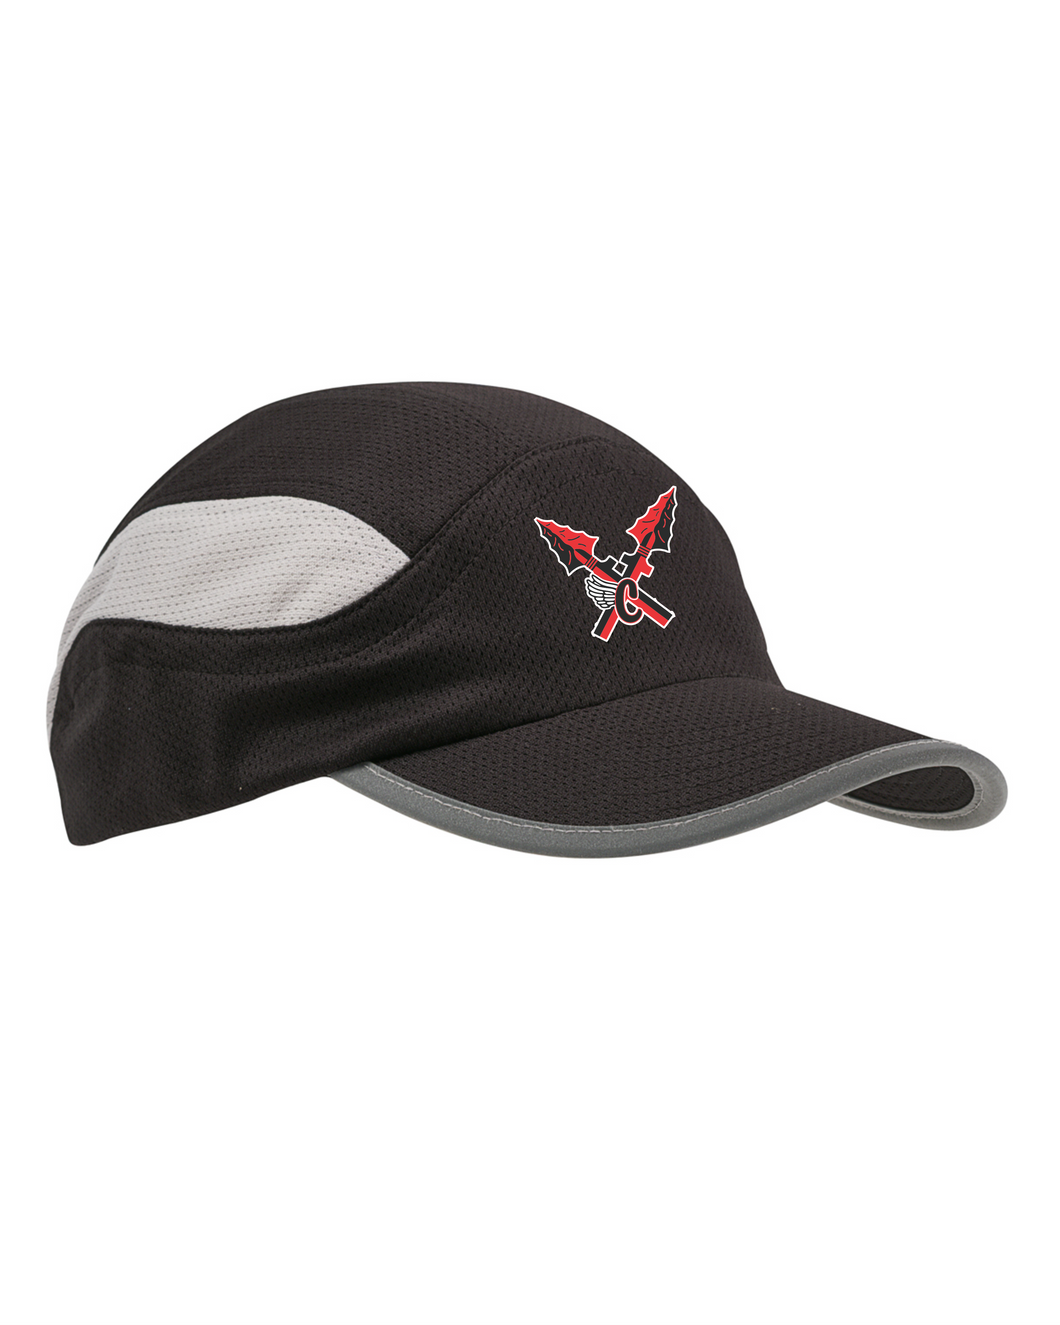 Item CHS-XC-907-3 - Big Accessories Mesh Runner Cap - CHS Front XC Logo